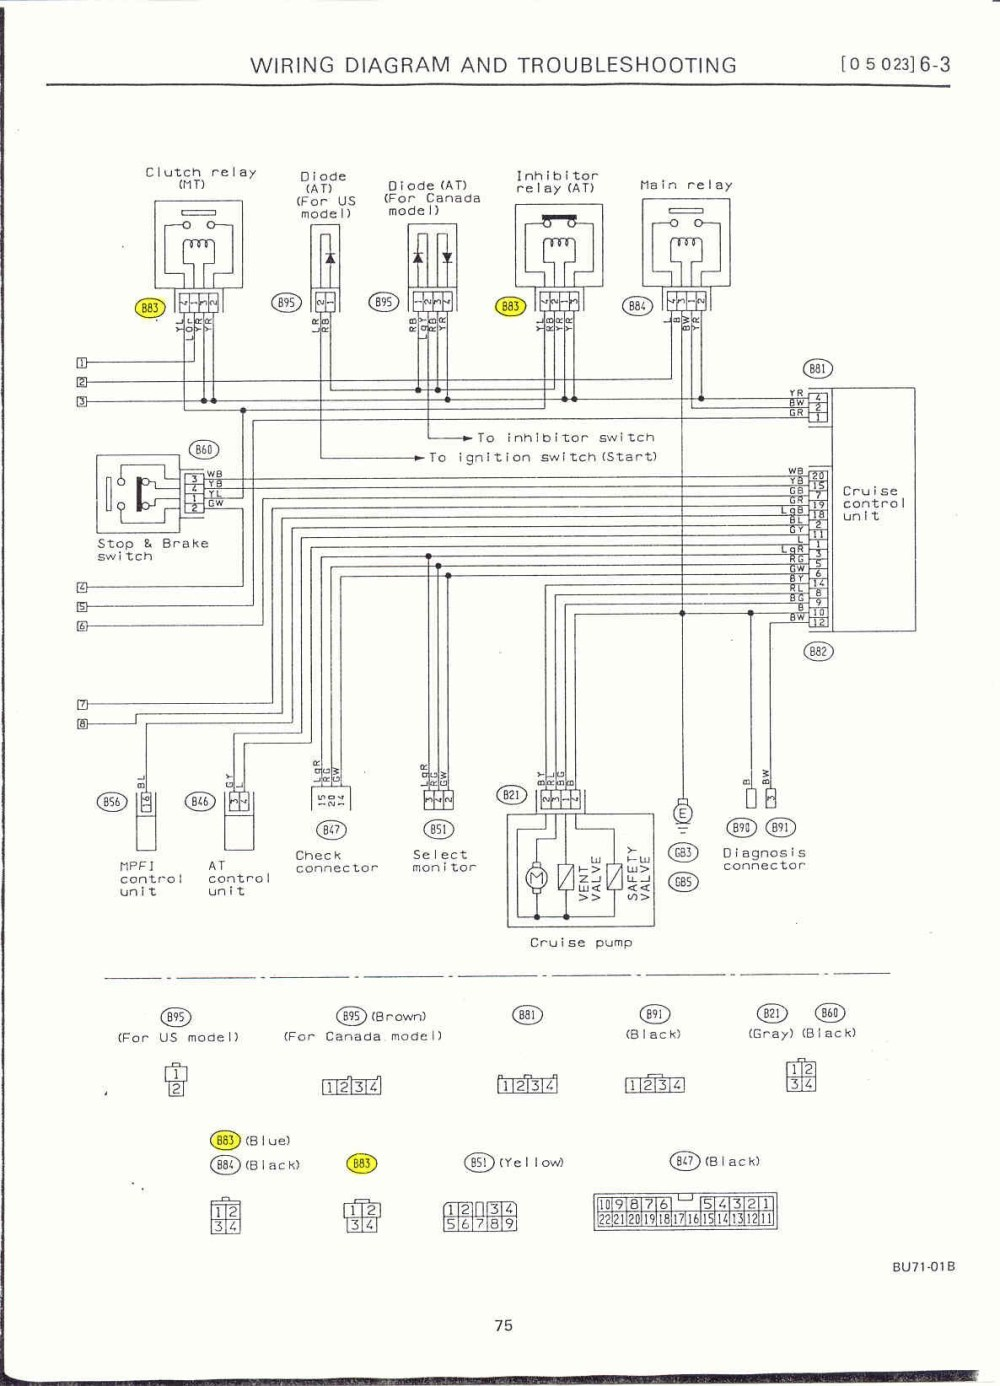 medium resolution of 1997 subaru legacy ignition diagram wiring diagram load subaru legacy ignition switch wiring